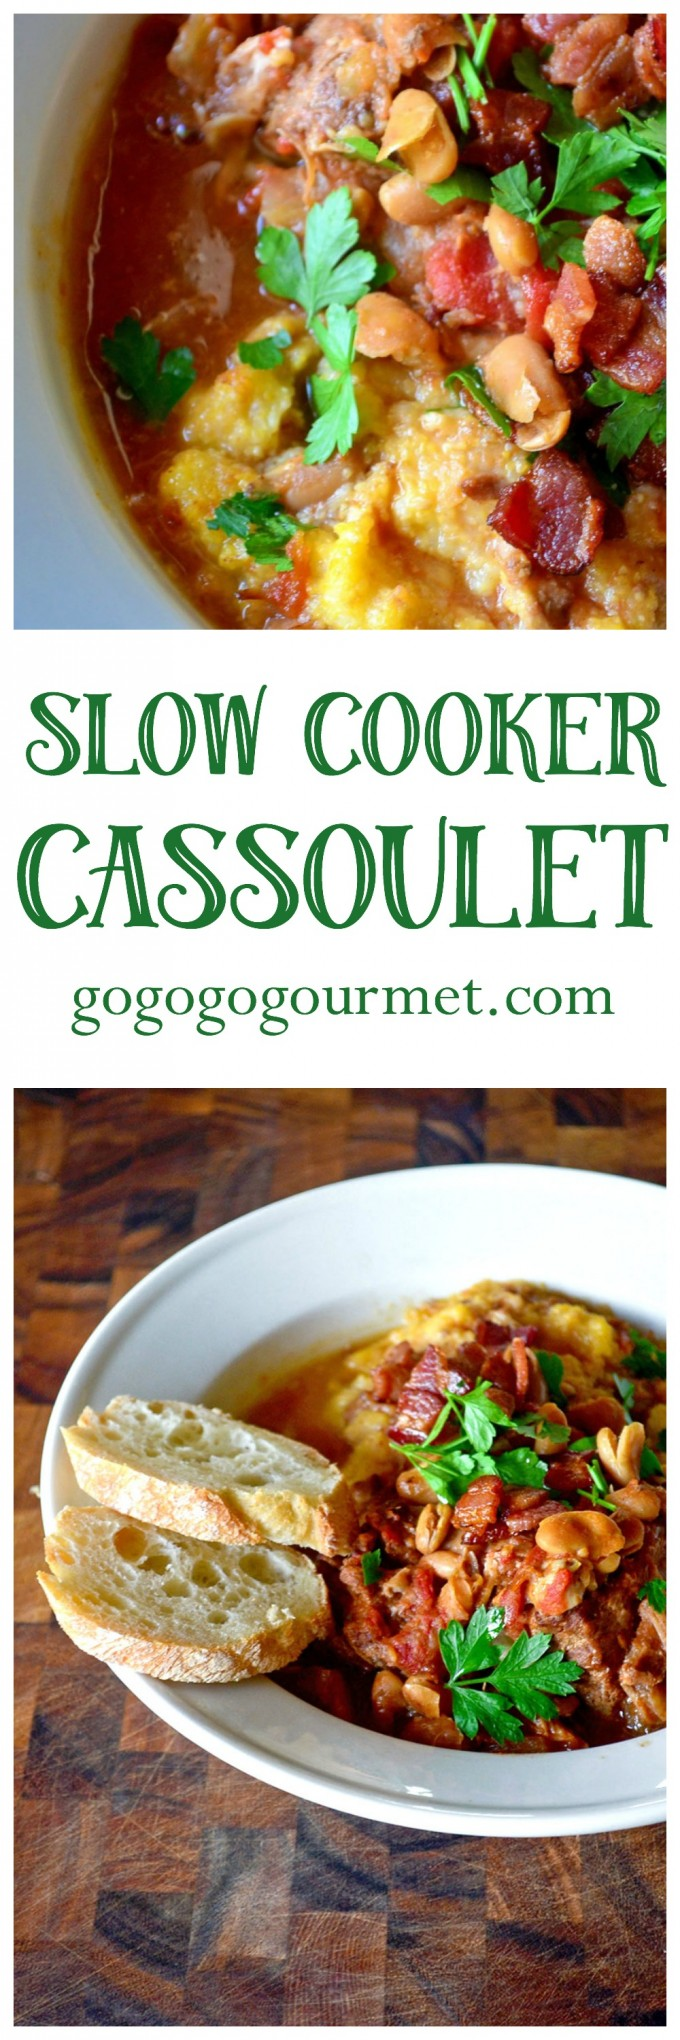 The warm flavors of cassoulet- tomatoes, wine, beans, sausage and pork shoulder- come together for this weeknight dinner thanks to your crockpot! Slow Cooker Cassoulet @gogogogourmet